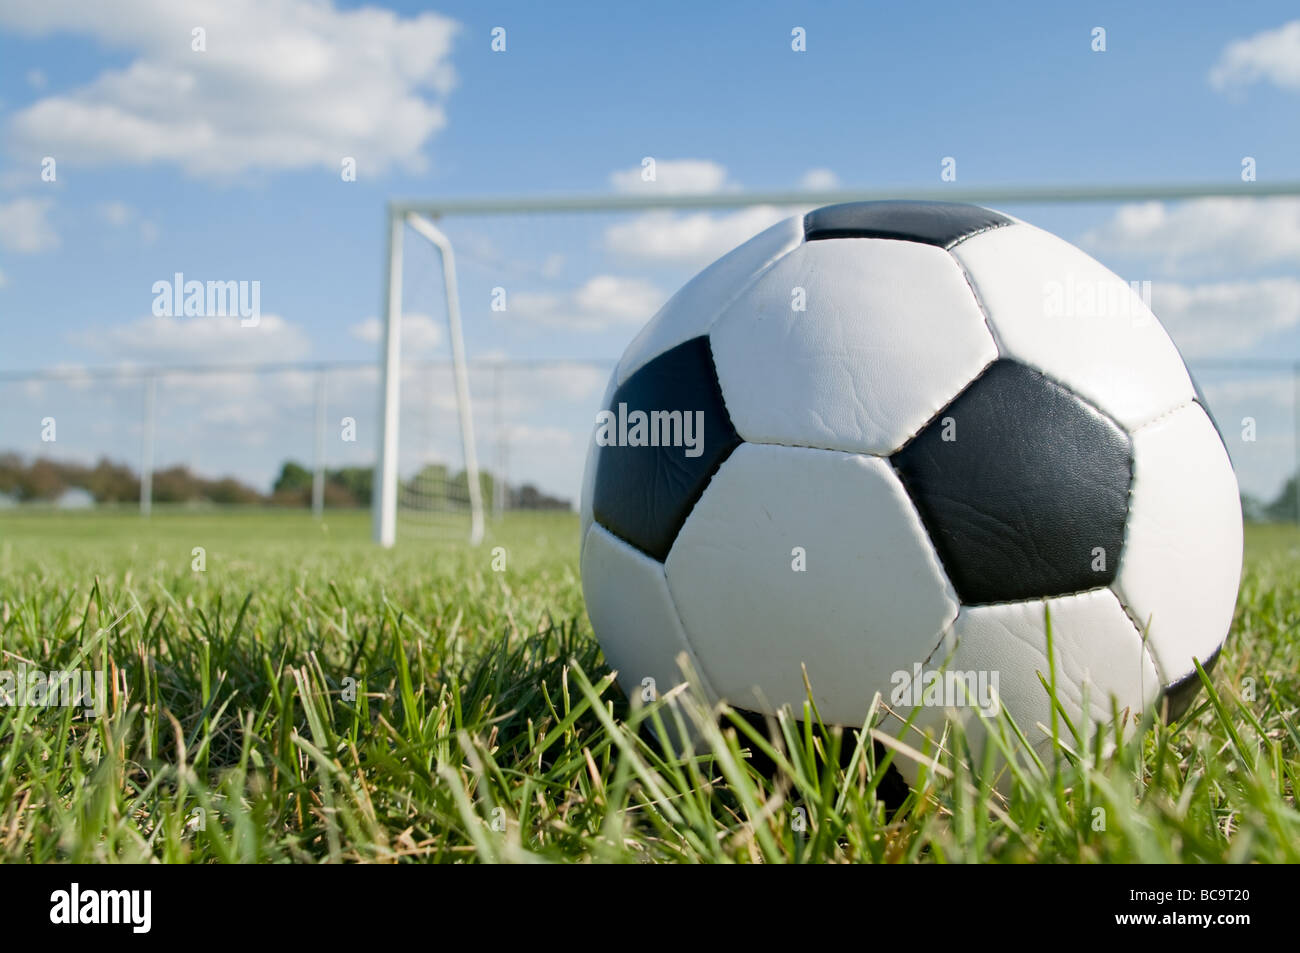 Soccer Backgrounds Stock Photo: Soccer Ball On The Pitch Field With Goal In Background